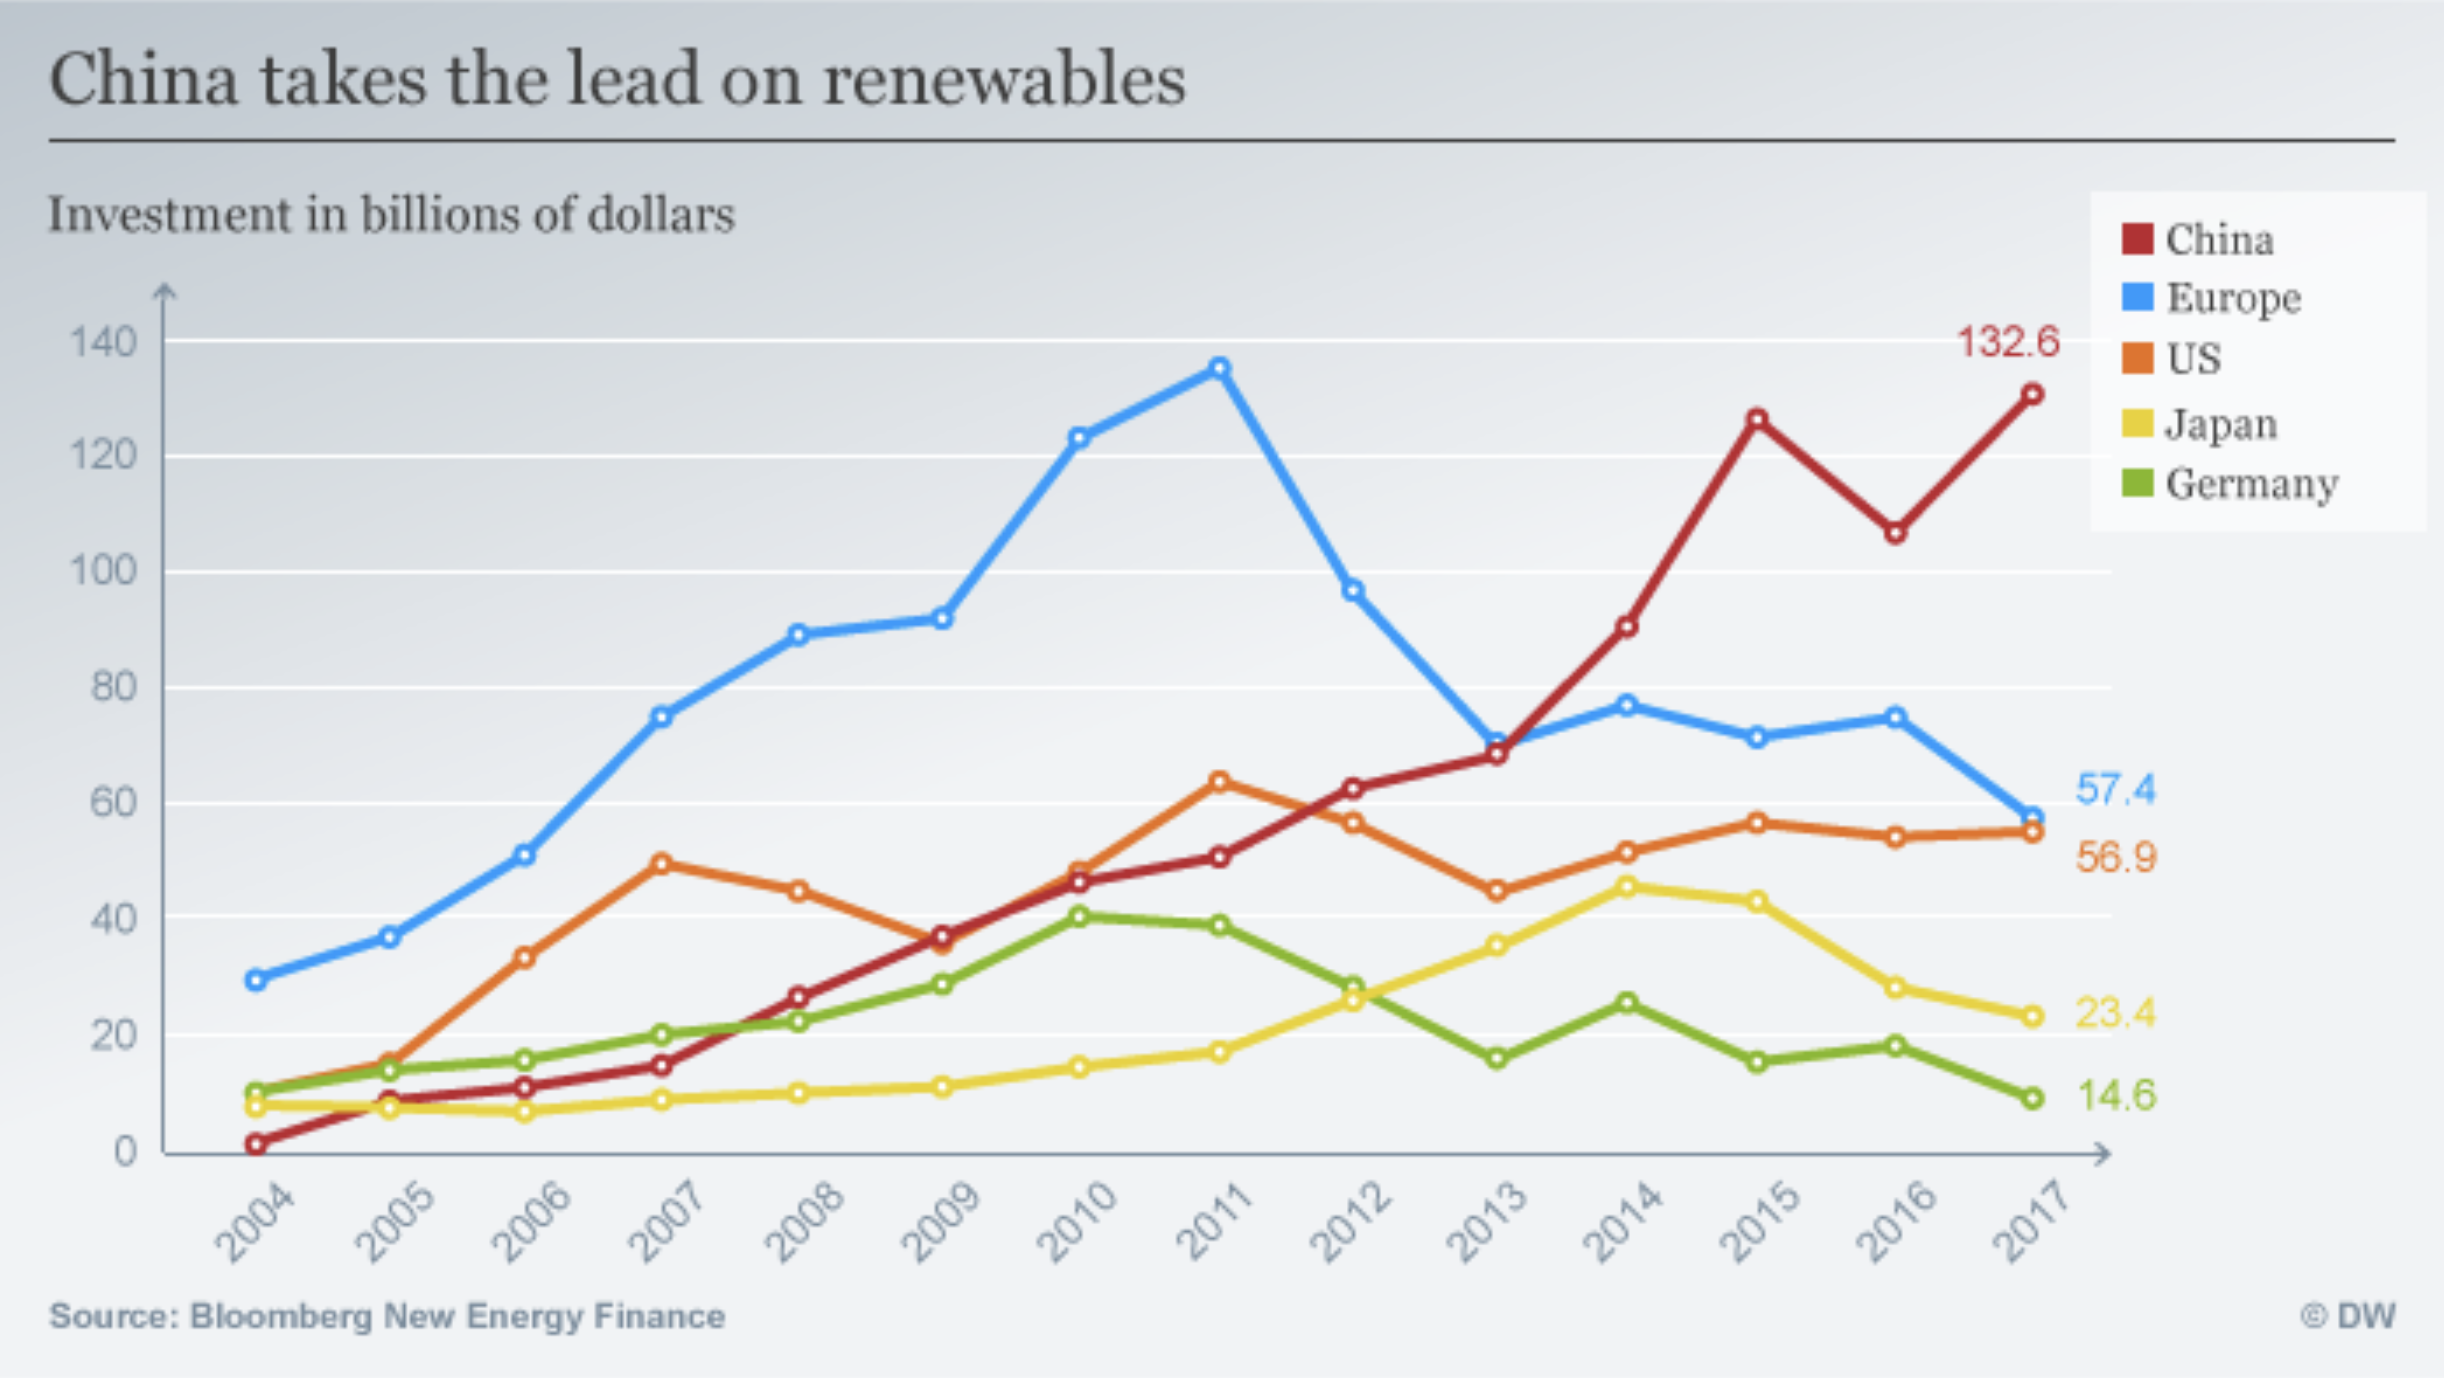 China's investment in renewables is leaving the rest of the world in its wake